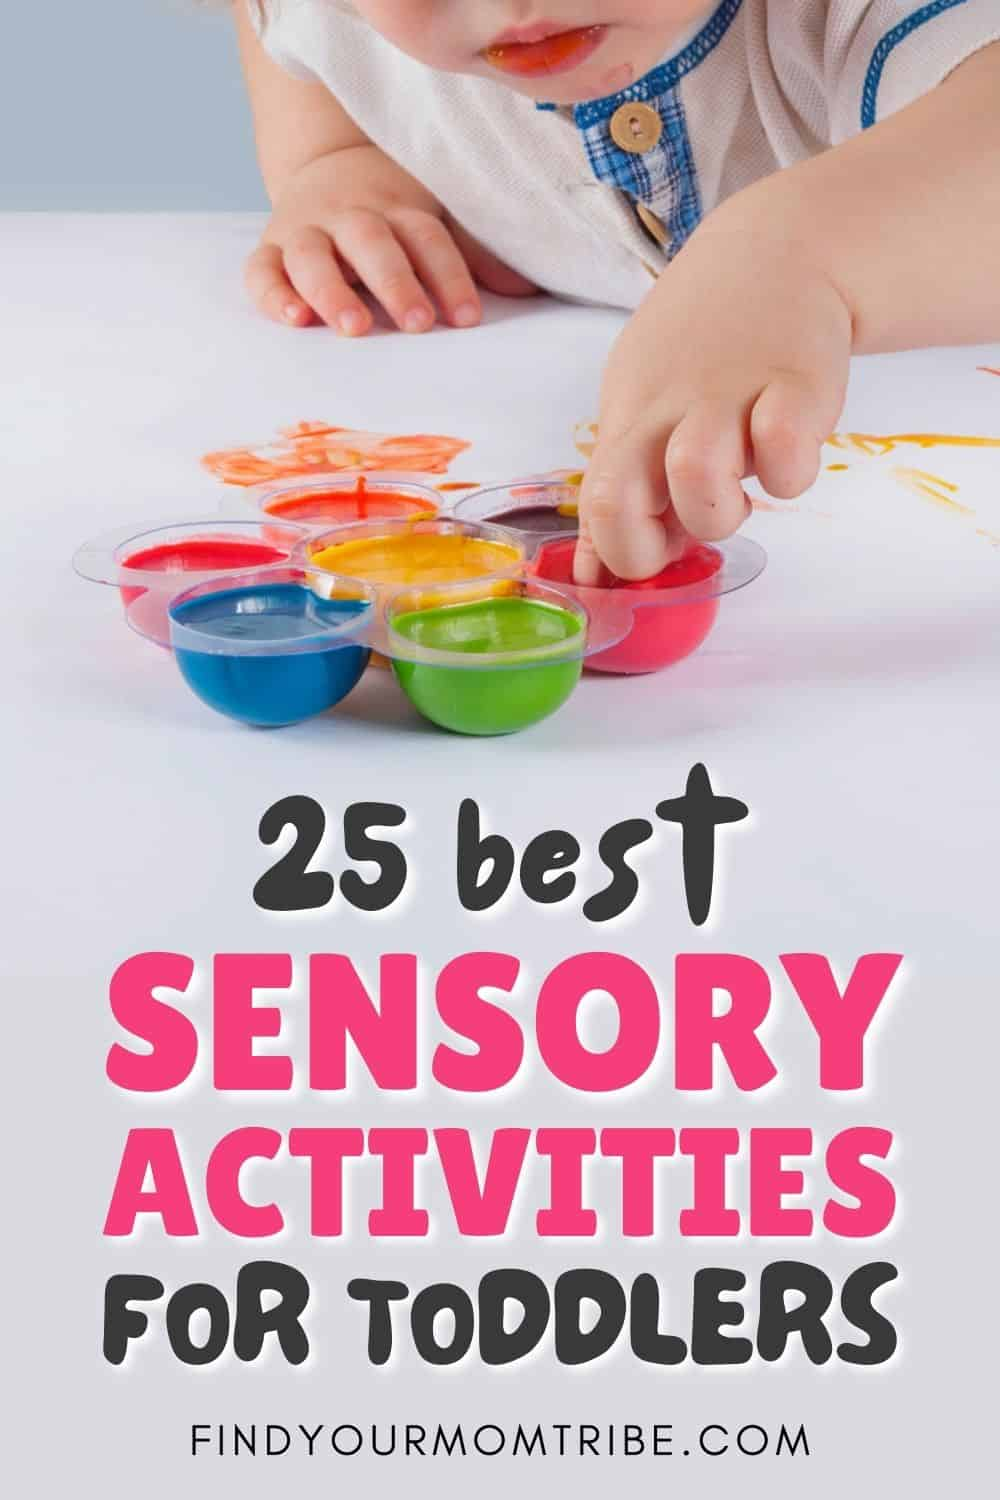 25 Best Sensory Activities For Toddlers Pinterest